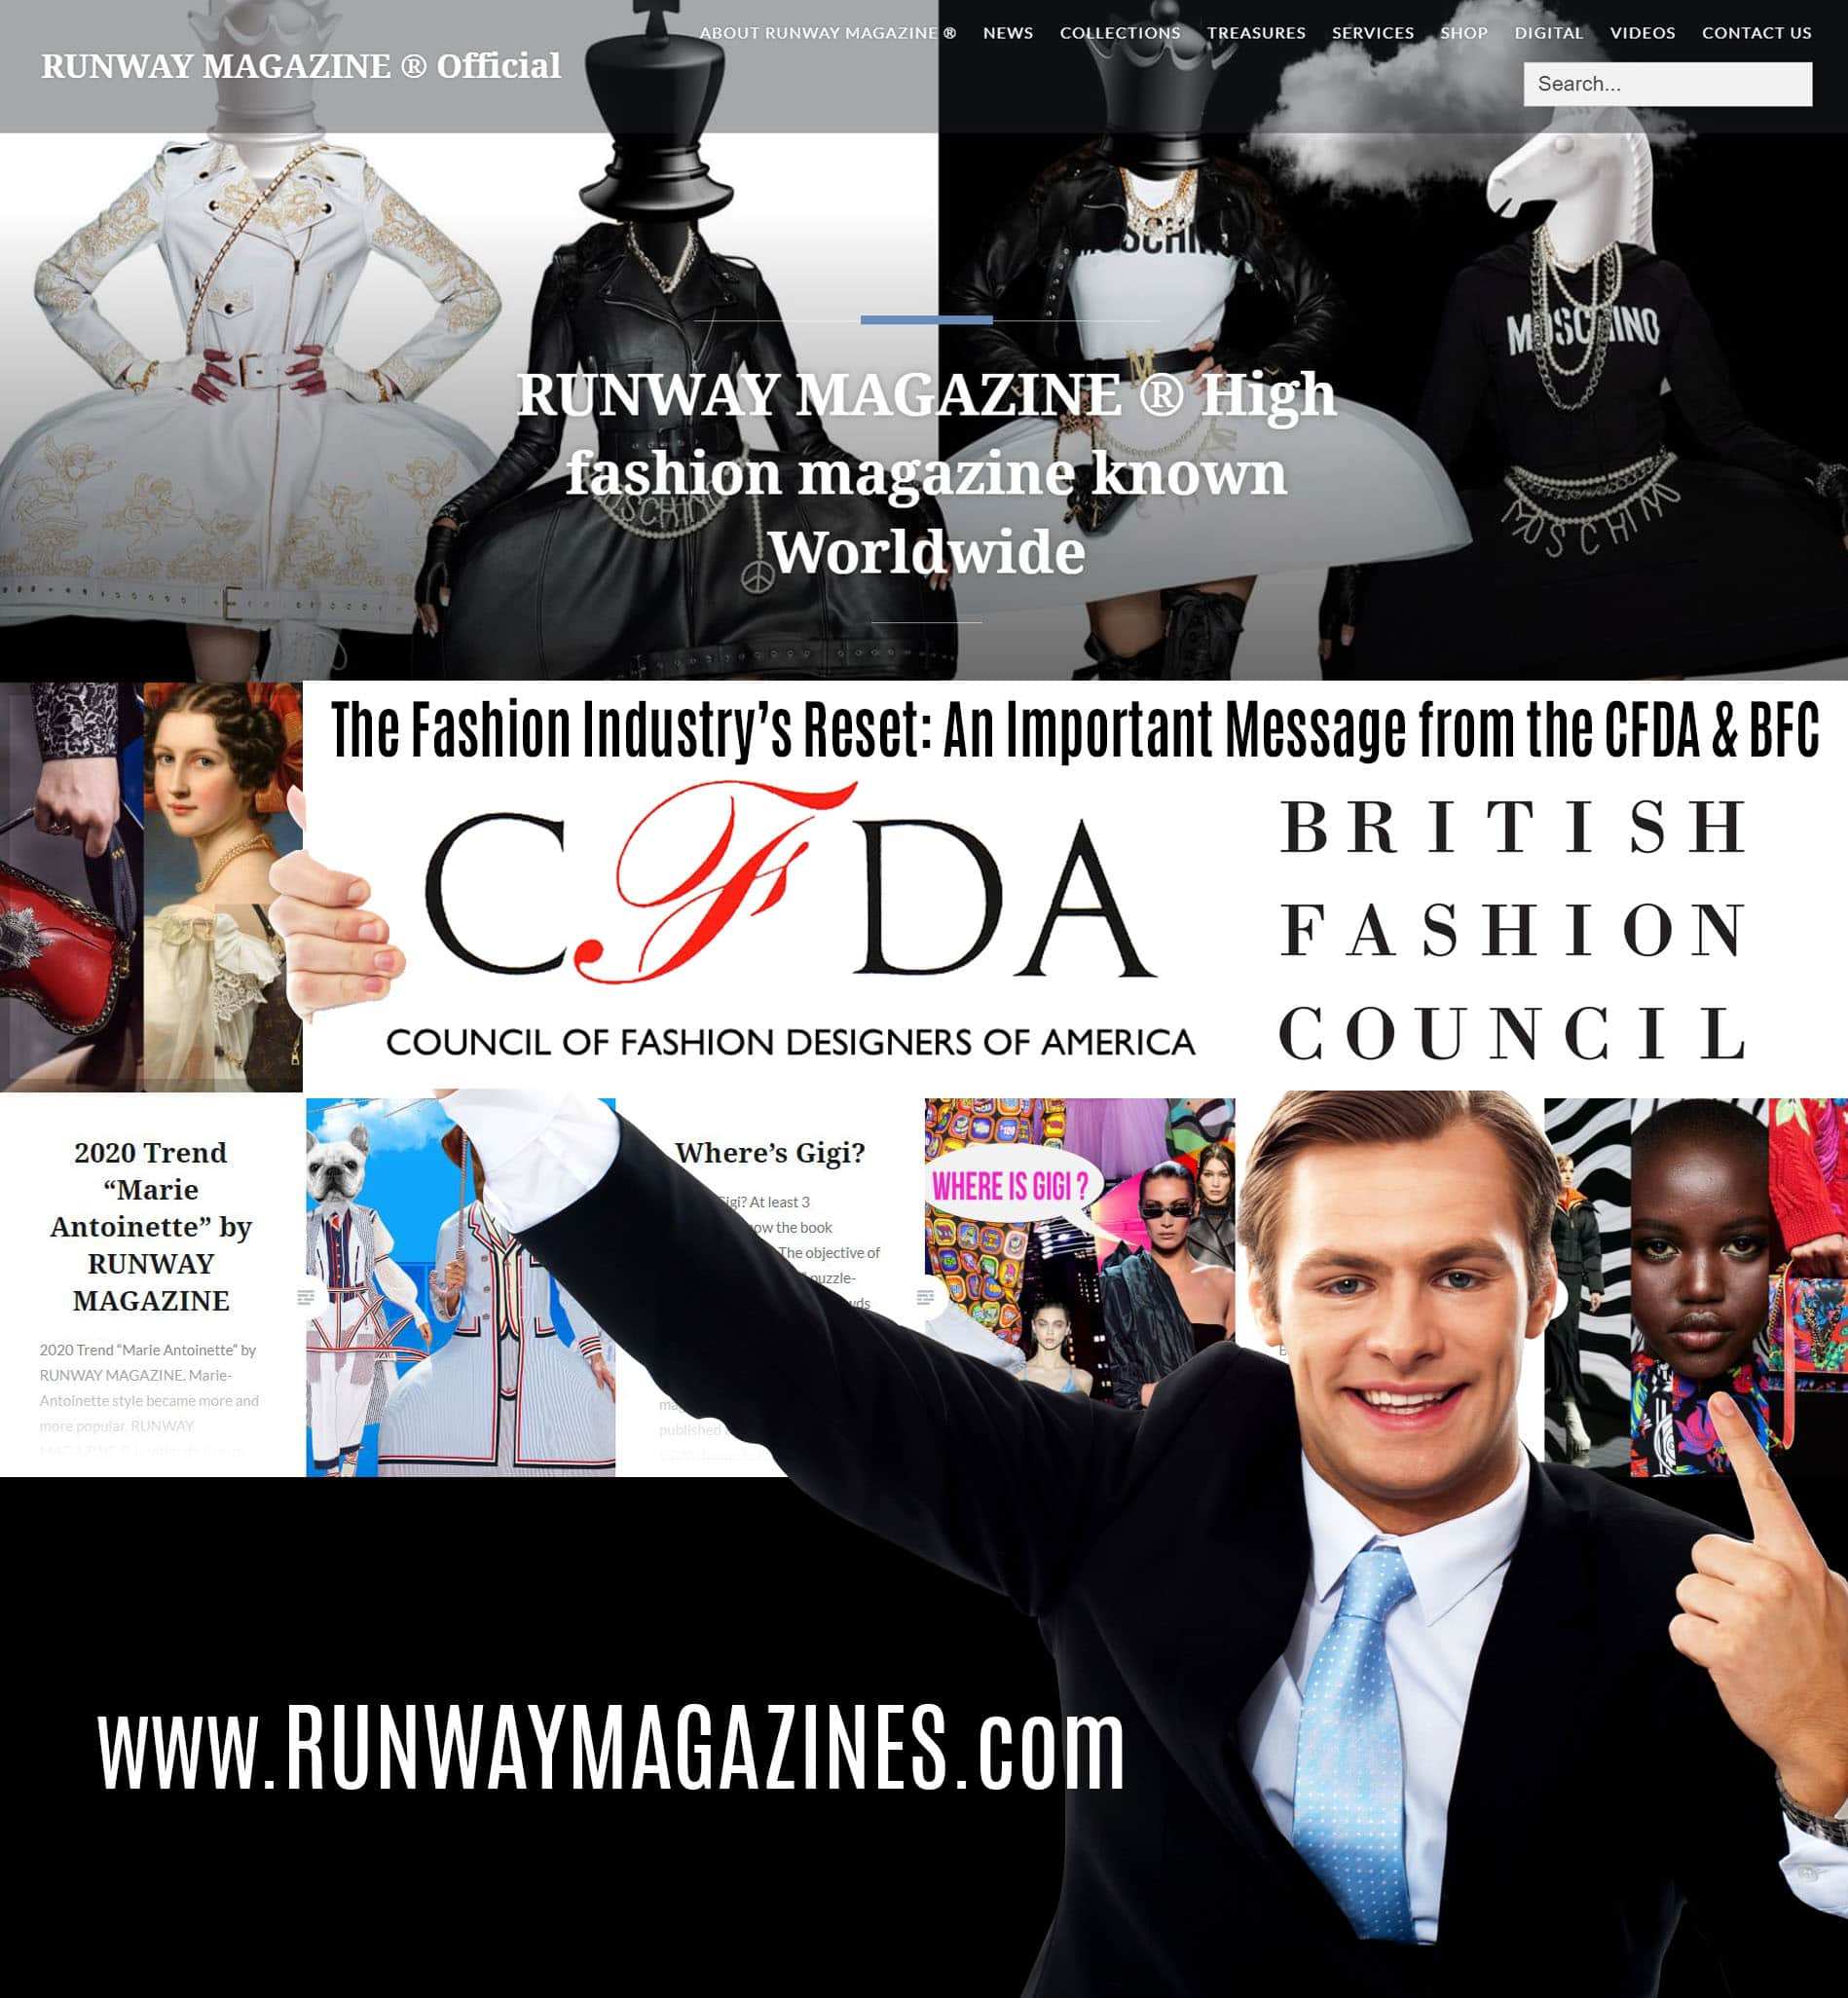 CFDA and BFC The Fashion Industry's Reset Manifesto